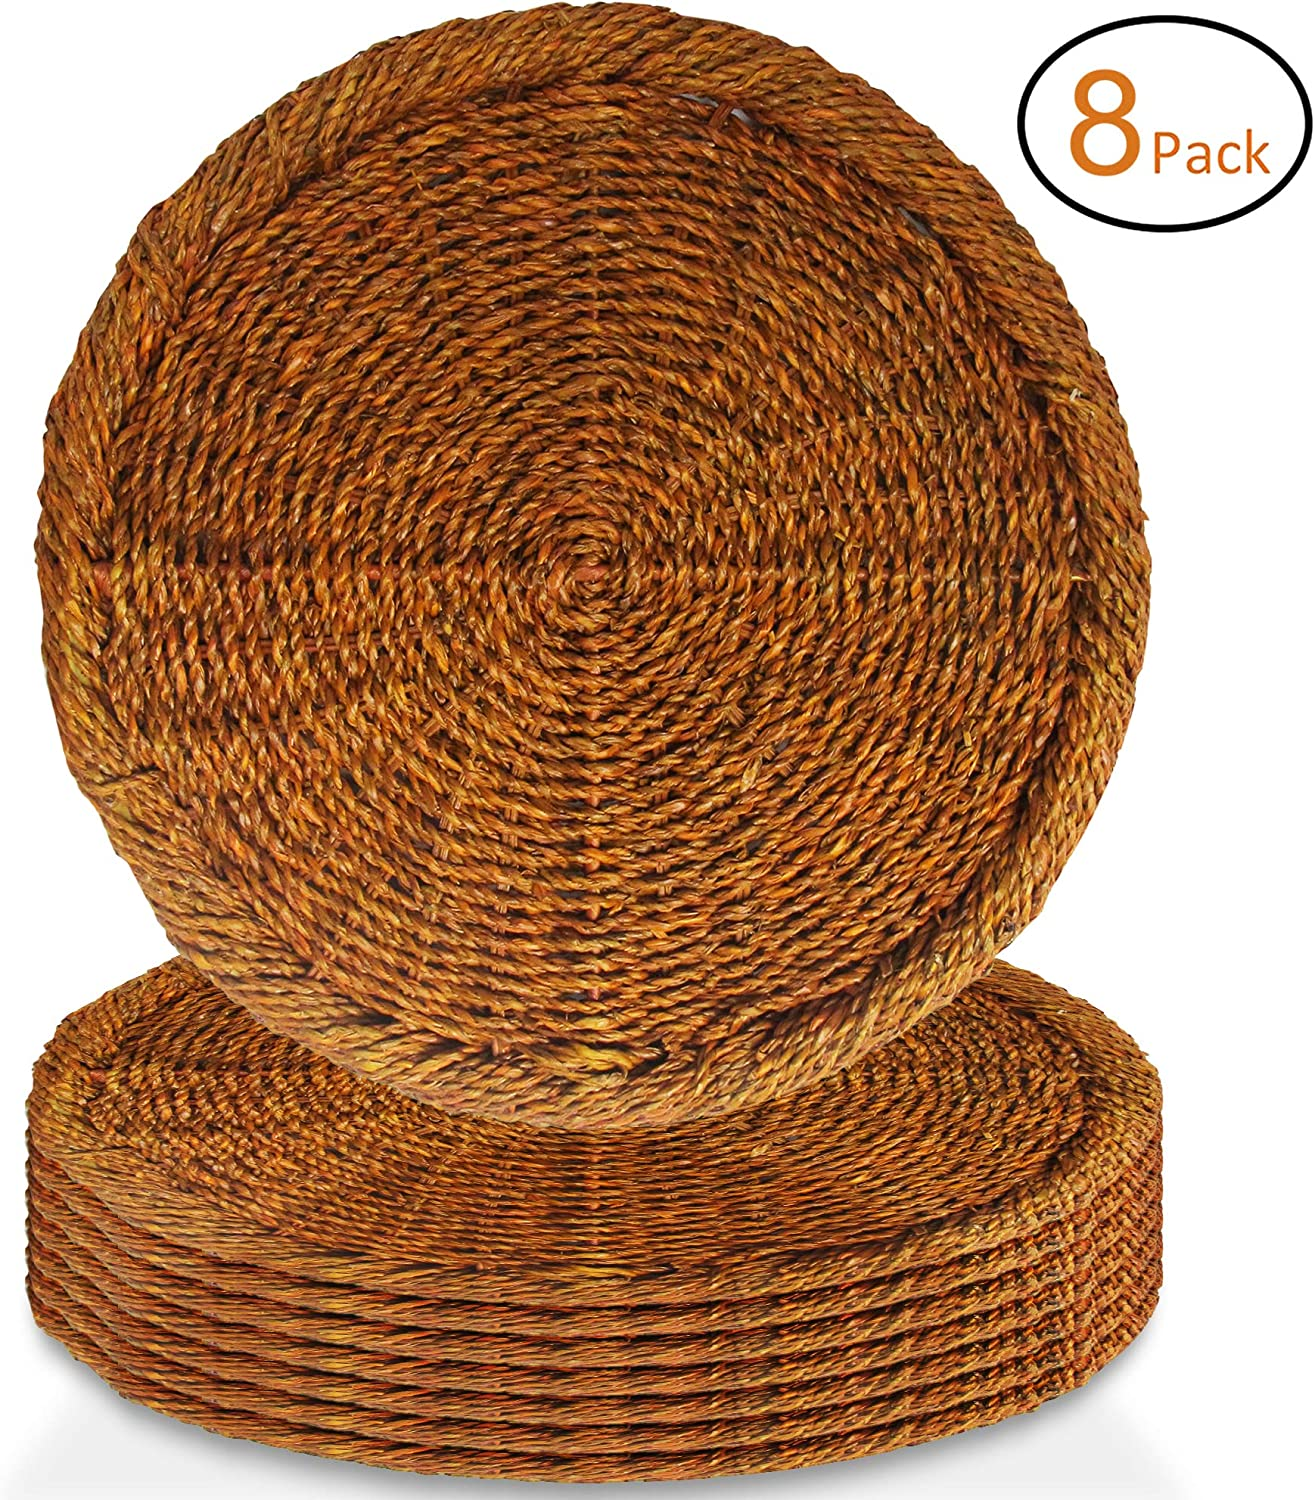 American Atelier Charger Plates 13 Inch Round Rattan Set of 8 Brown